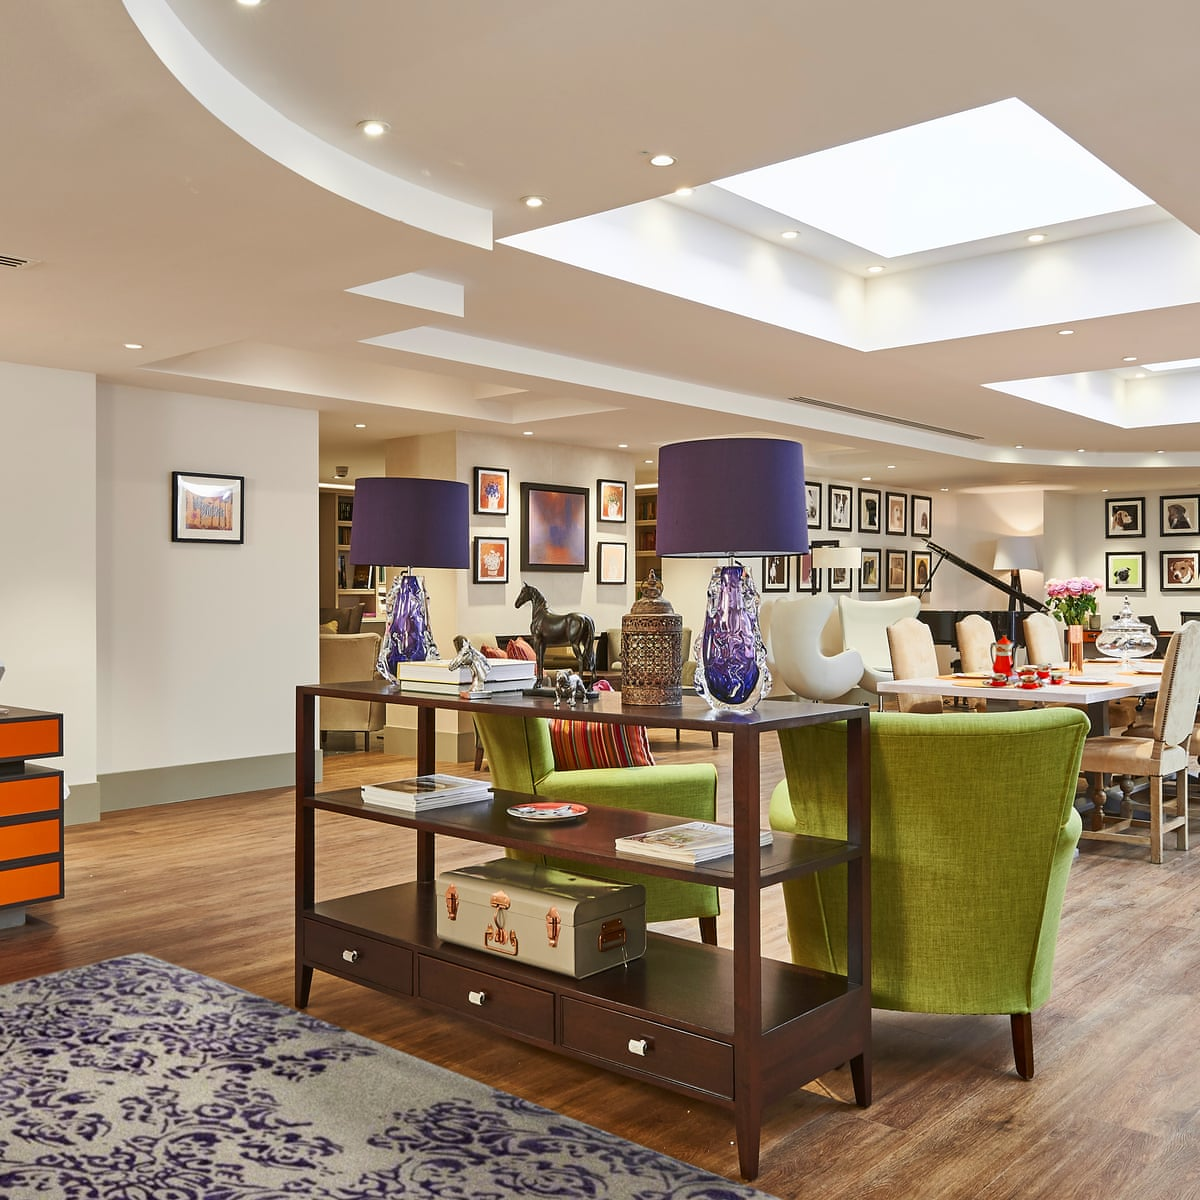 A Luxury Care Home For People With Dementia But At What Price Dementia The Guardian